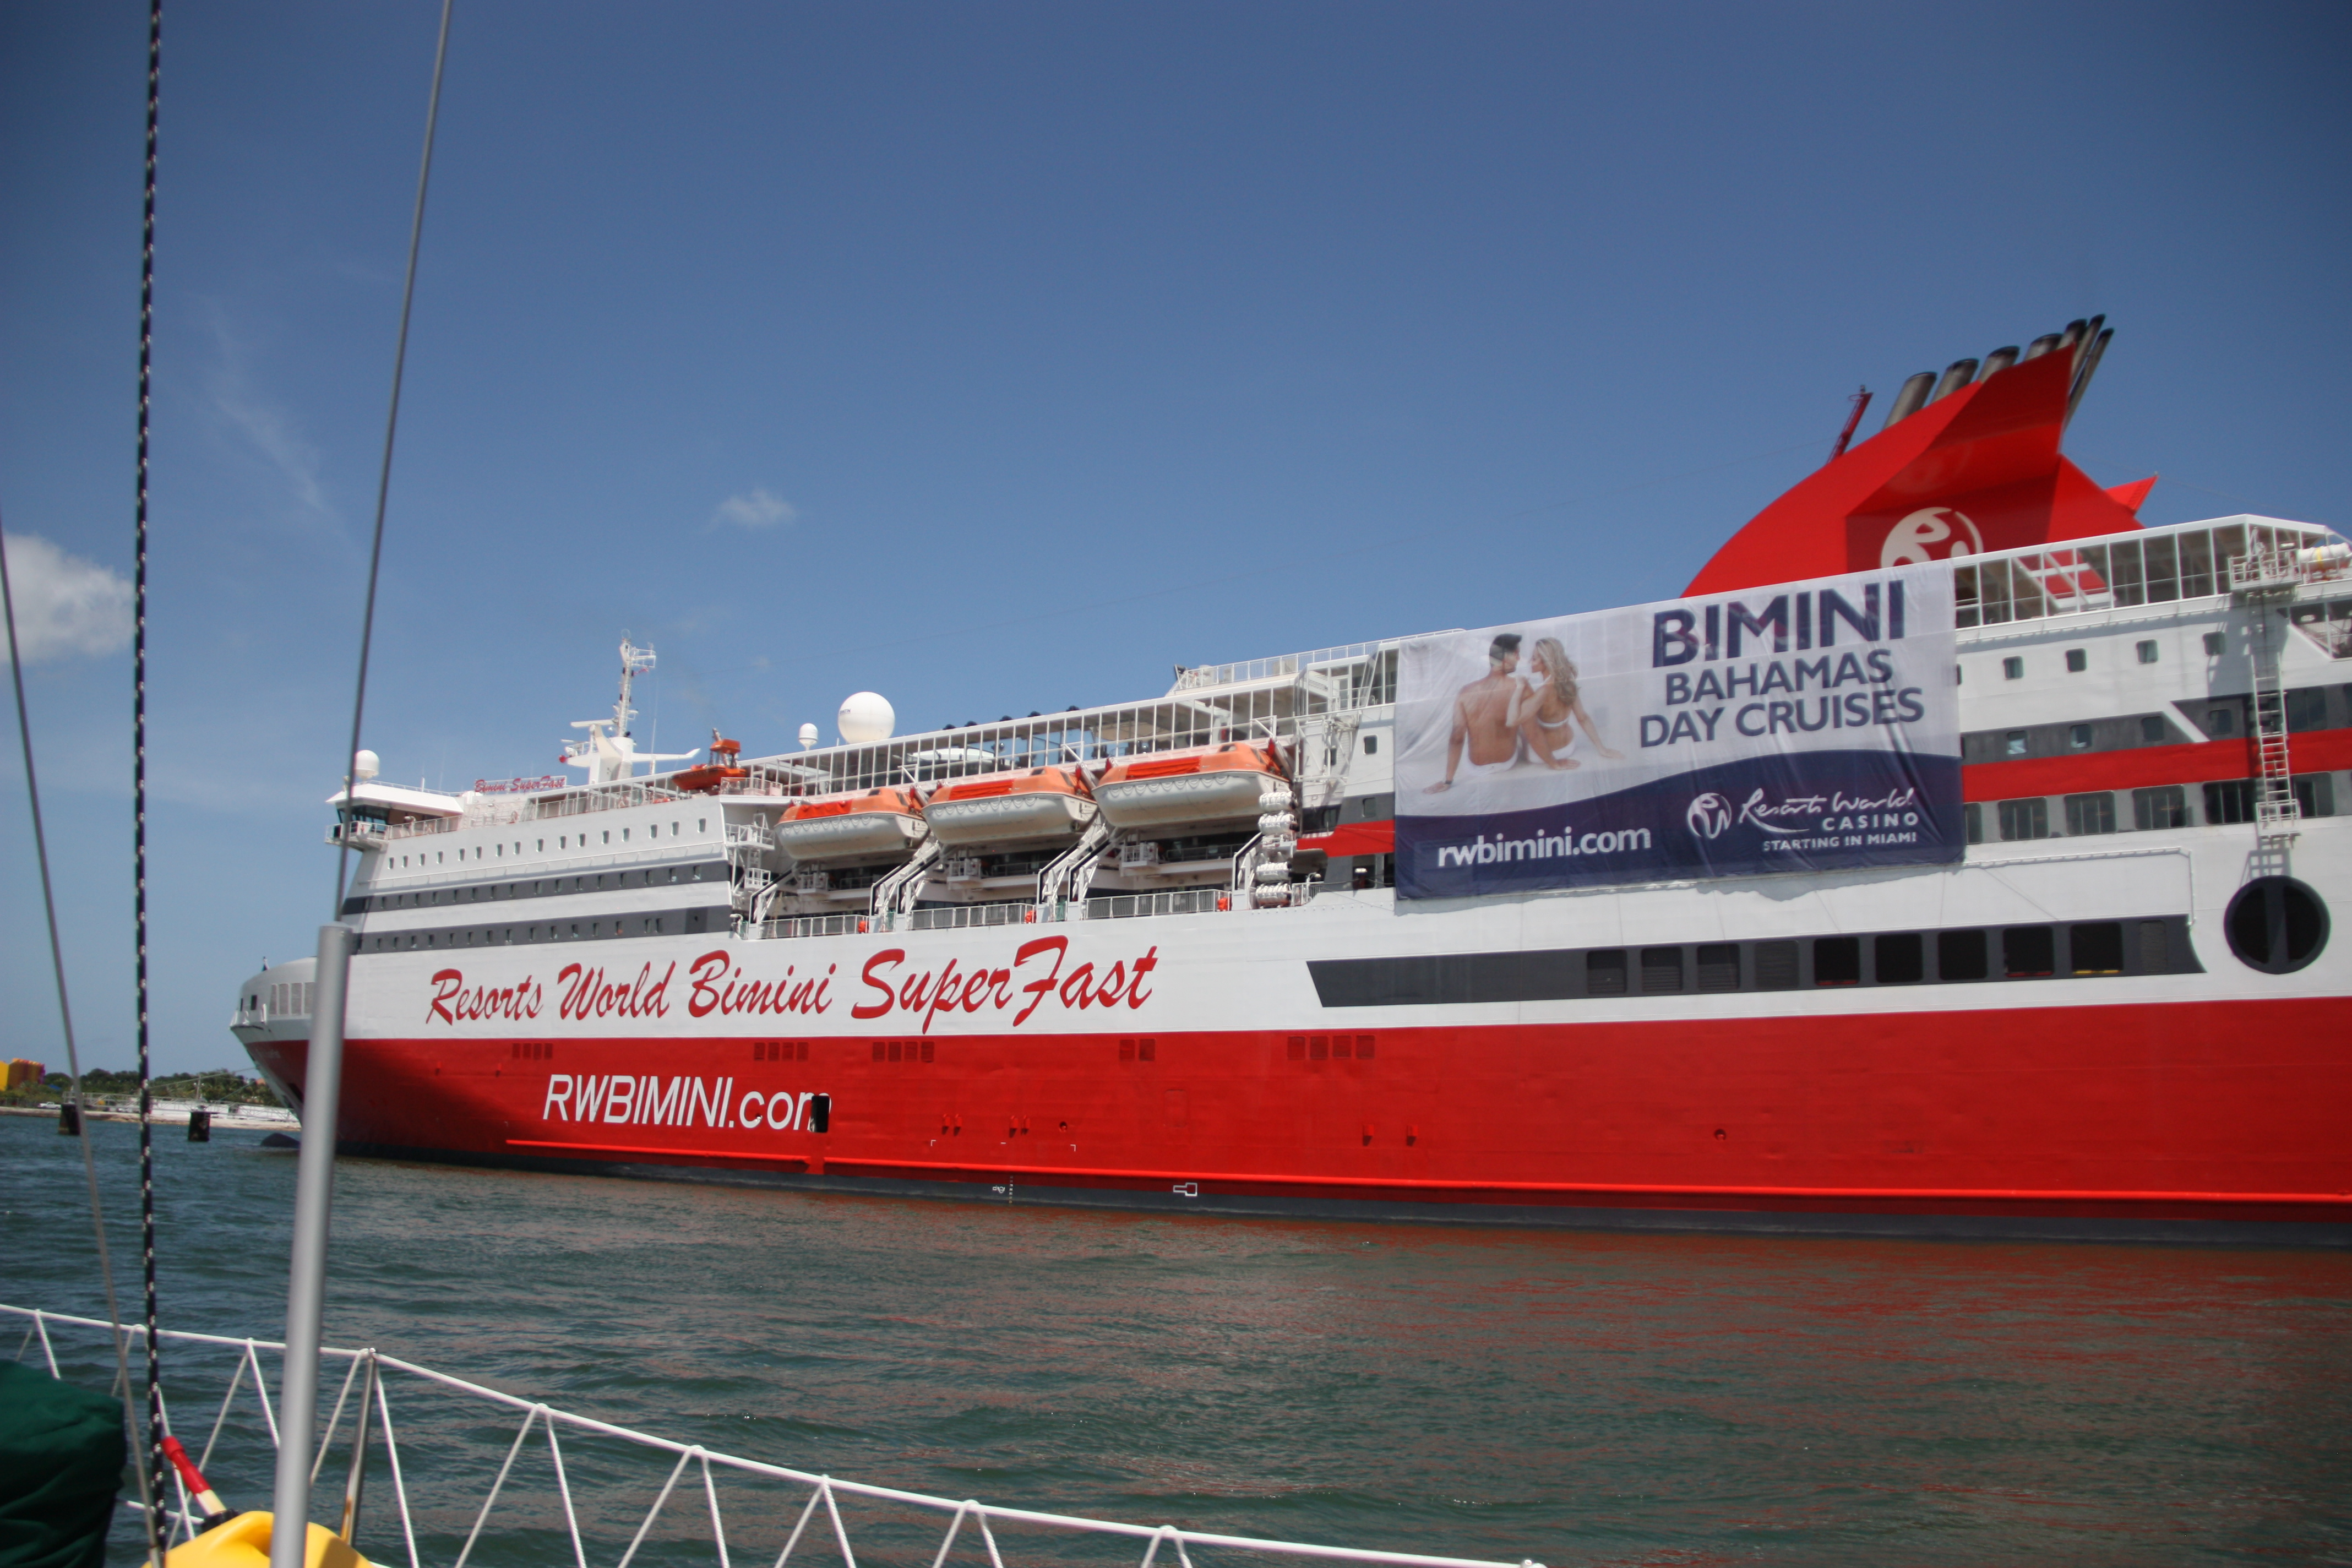 The Bimini Superfast and cruise ship that heads to a casino in Bimini on day trips.